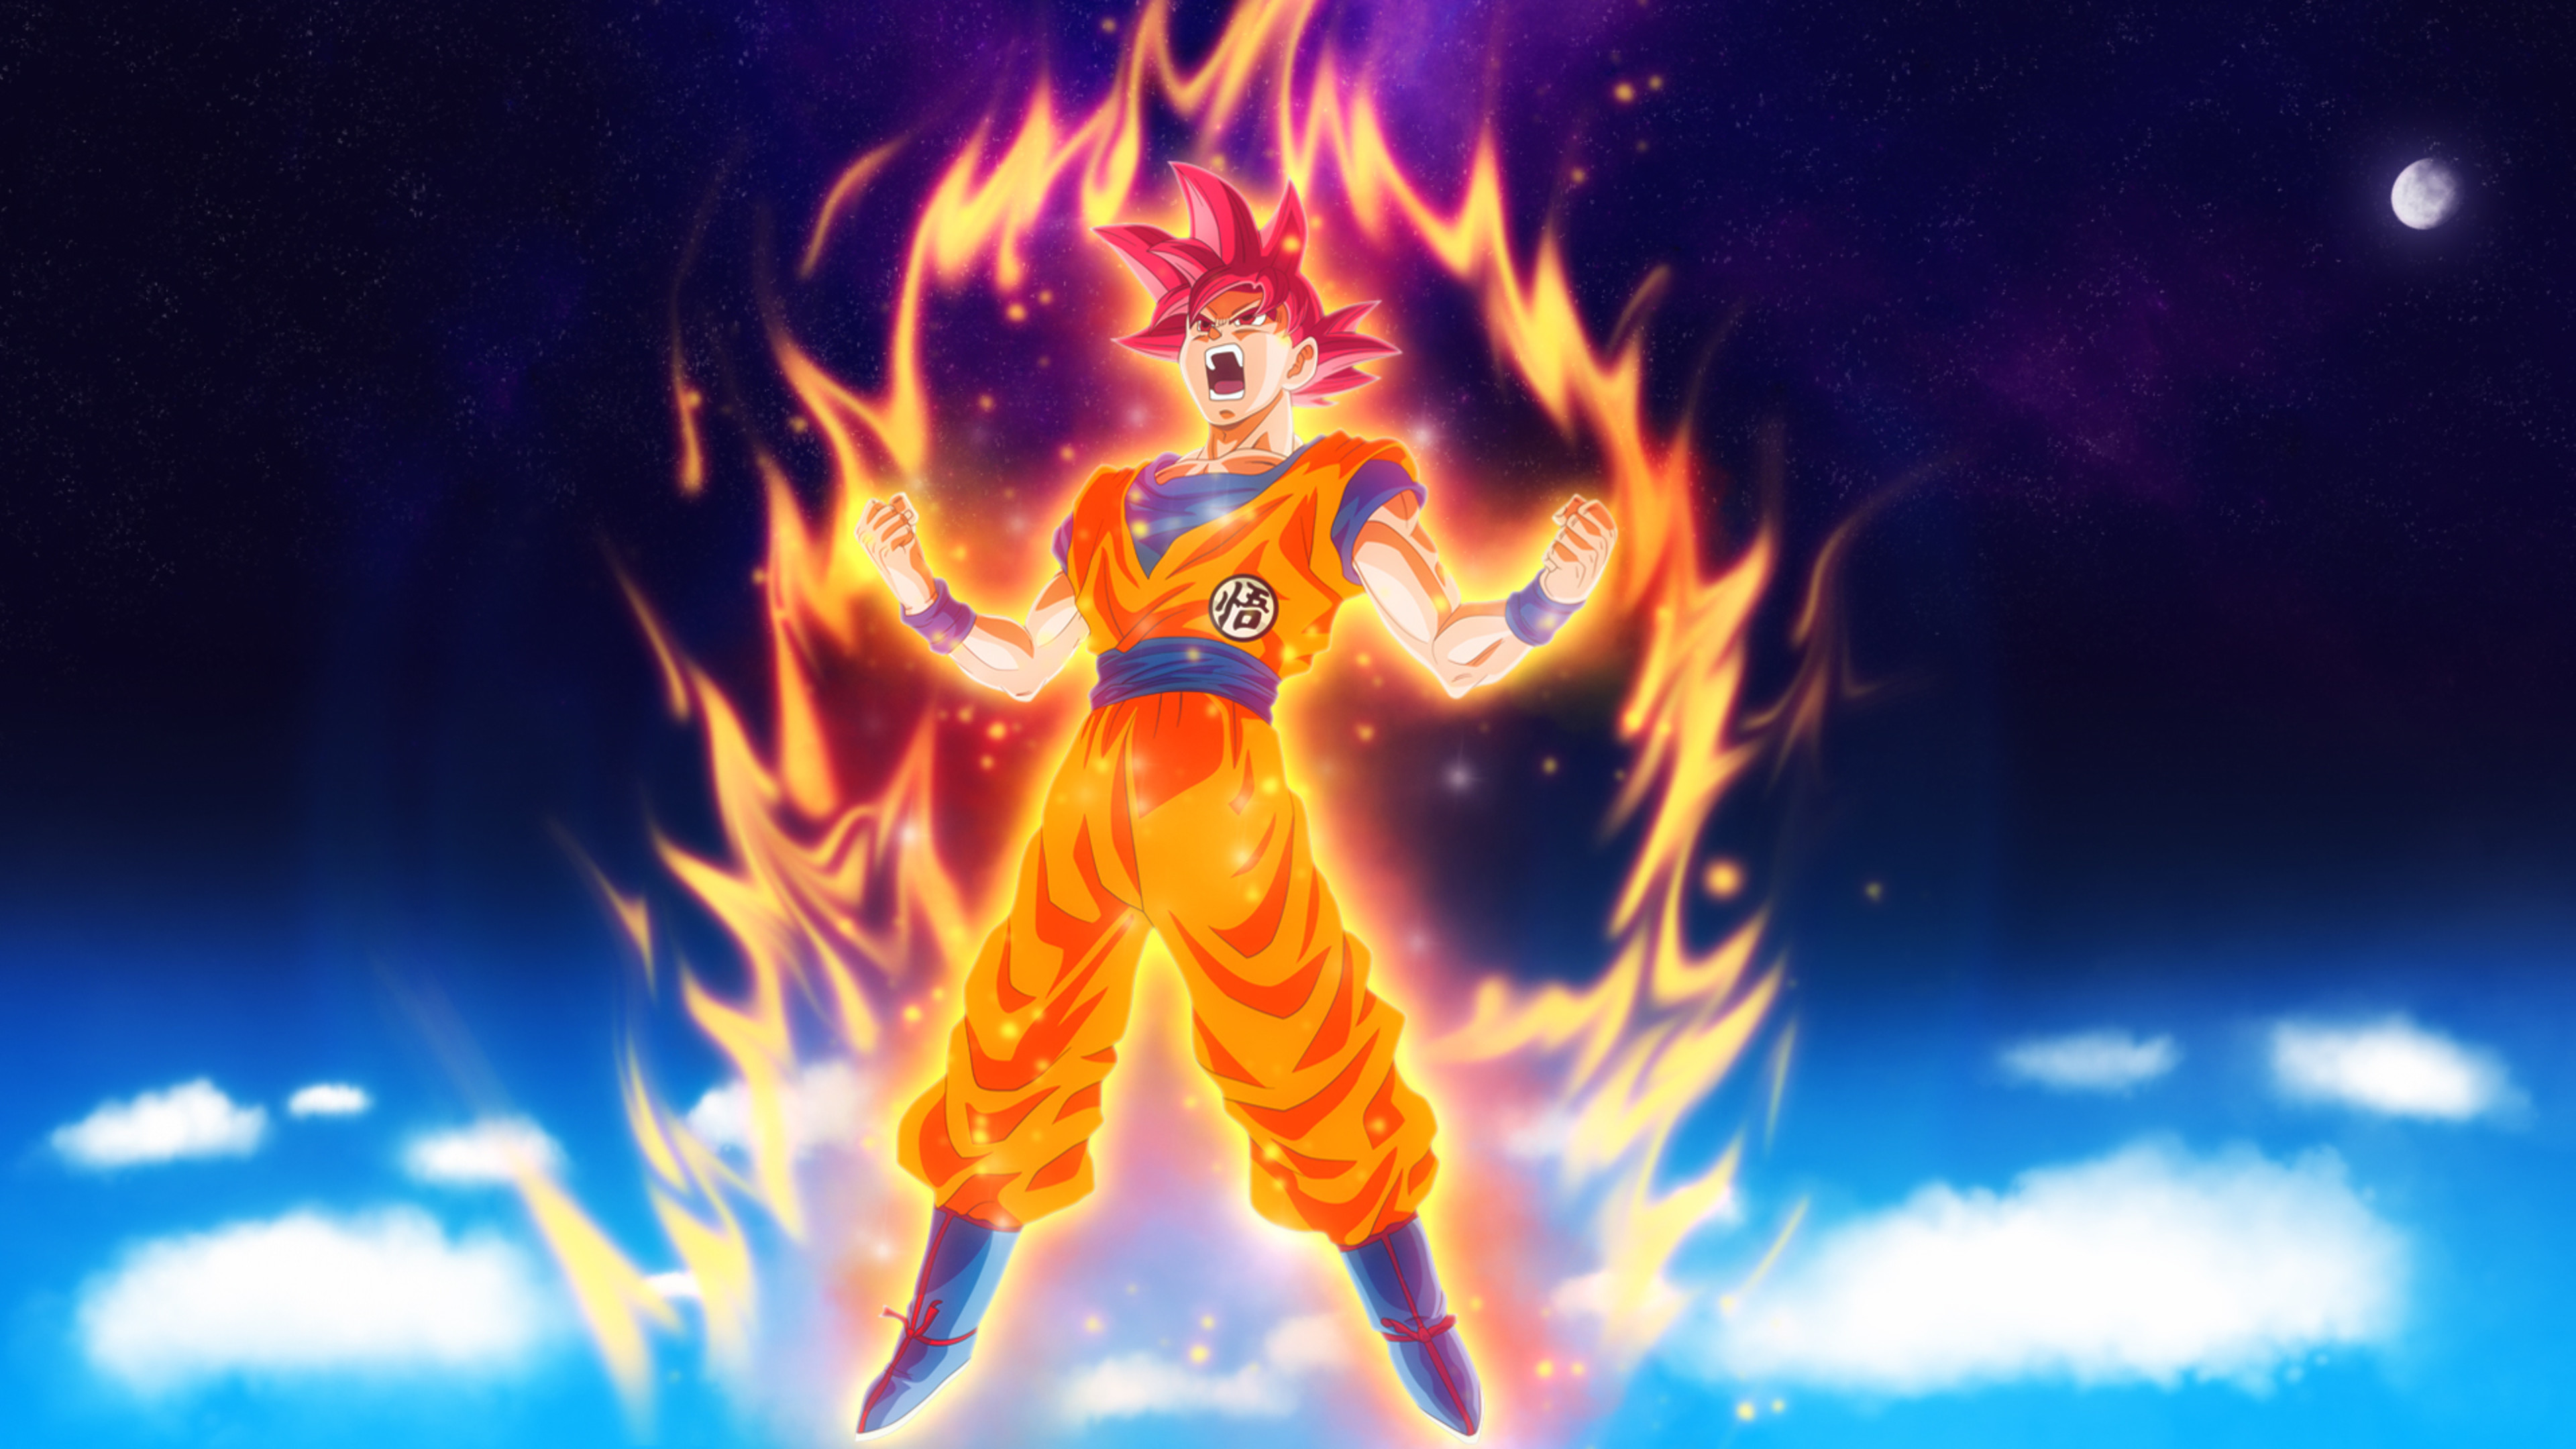 Res: 3840x2160,  Dragon Ball Z Goku 4k HD 4k Wallpapers, Images, Backgrounds,  Photos and Pictures